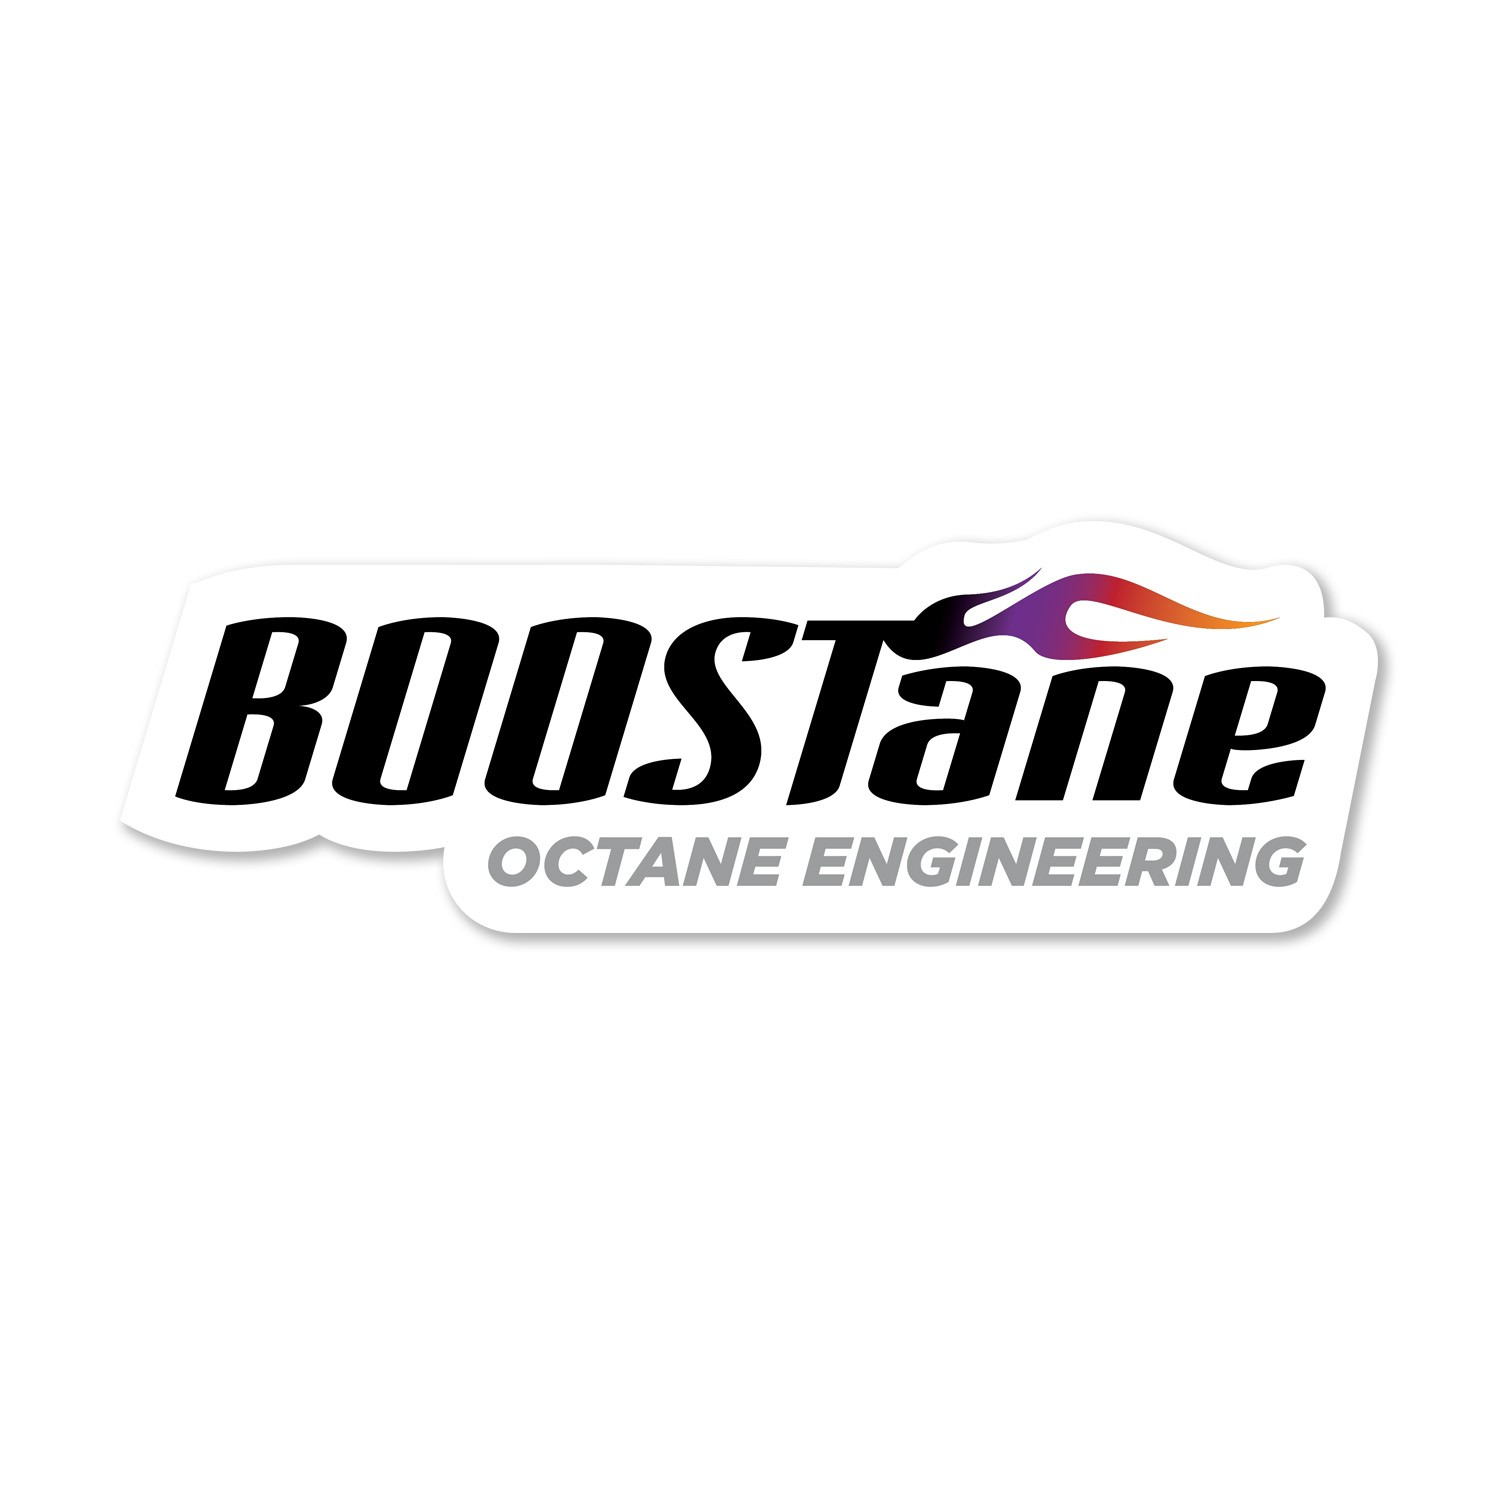 BOOSTane Decal Large